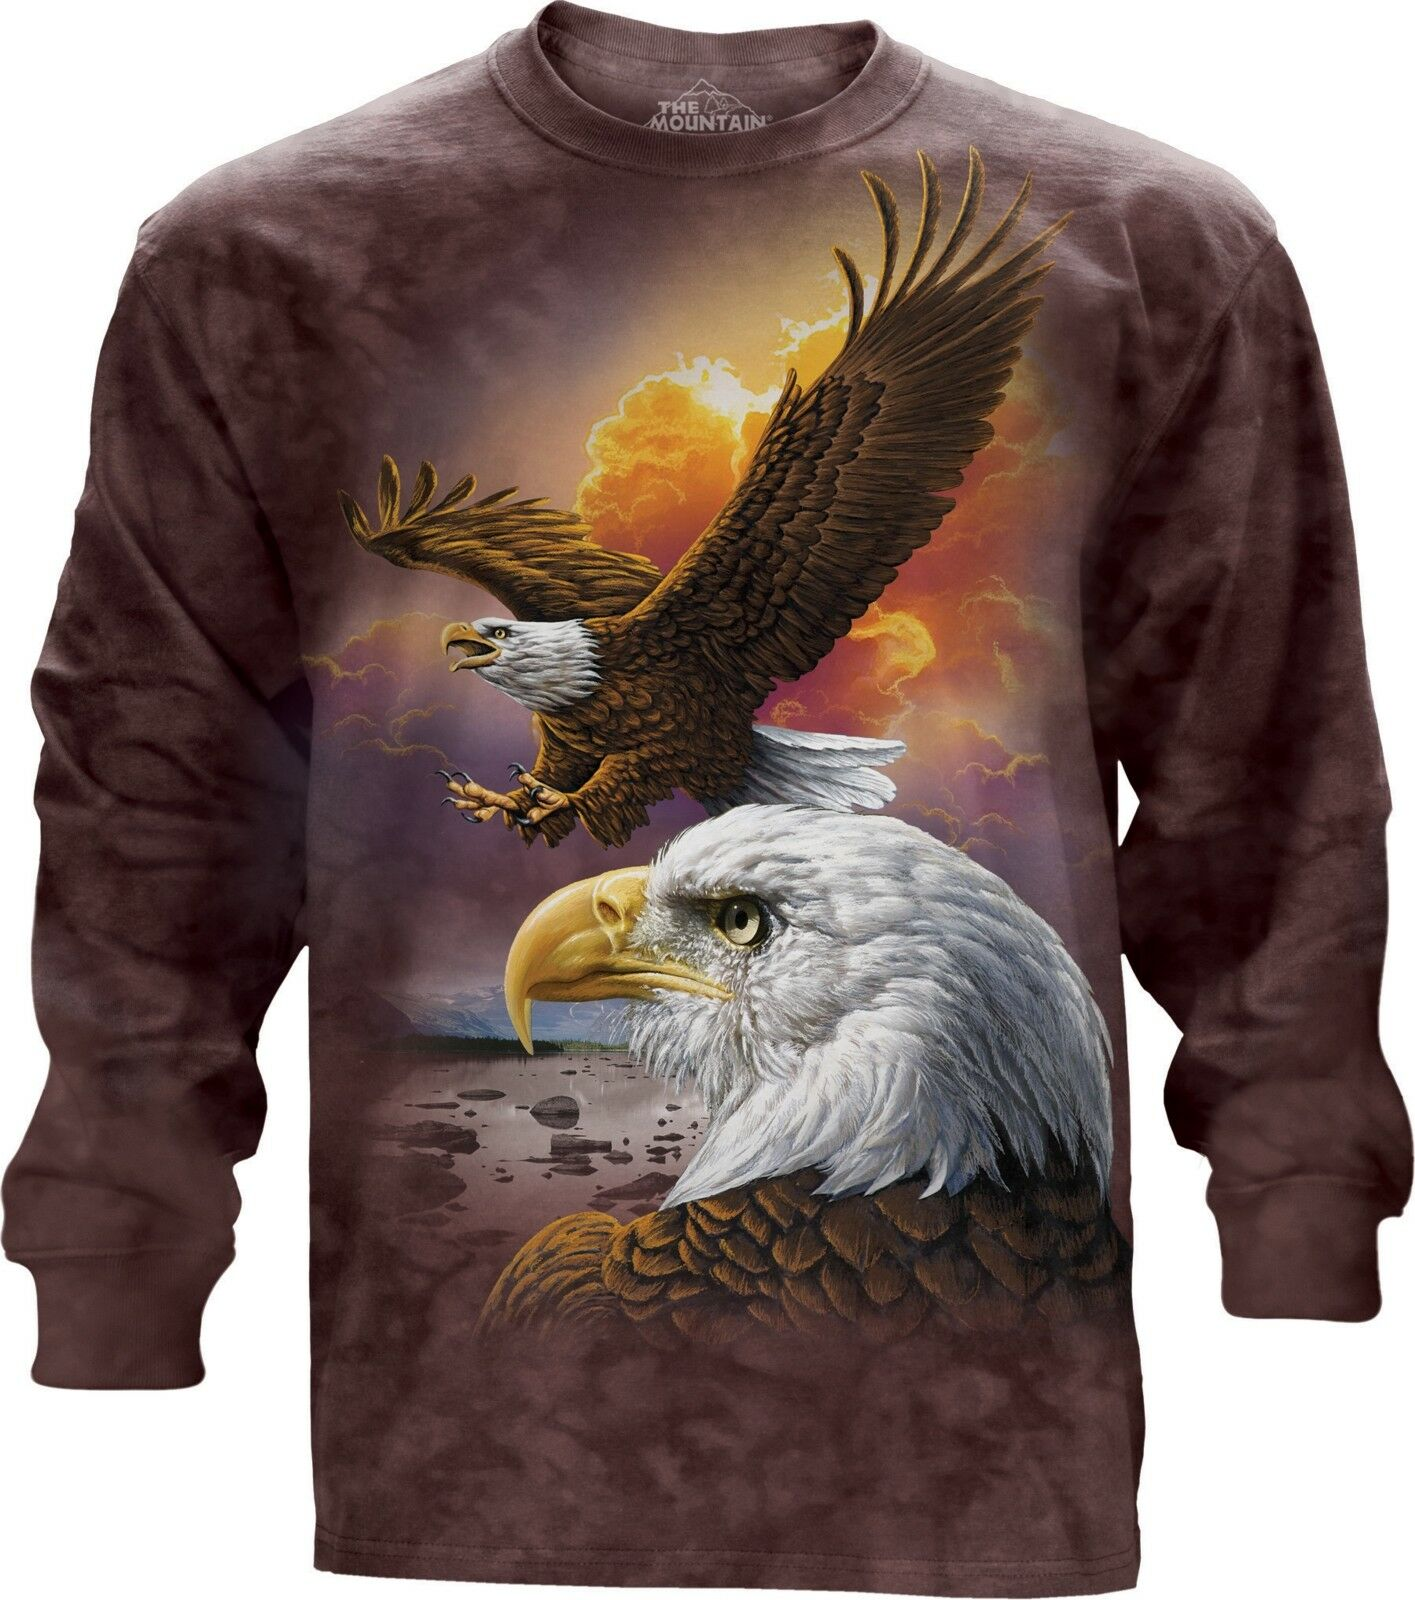 Eagle & Clouds Adult Unisex Langesleeve oben The Mountain